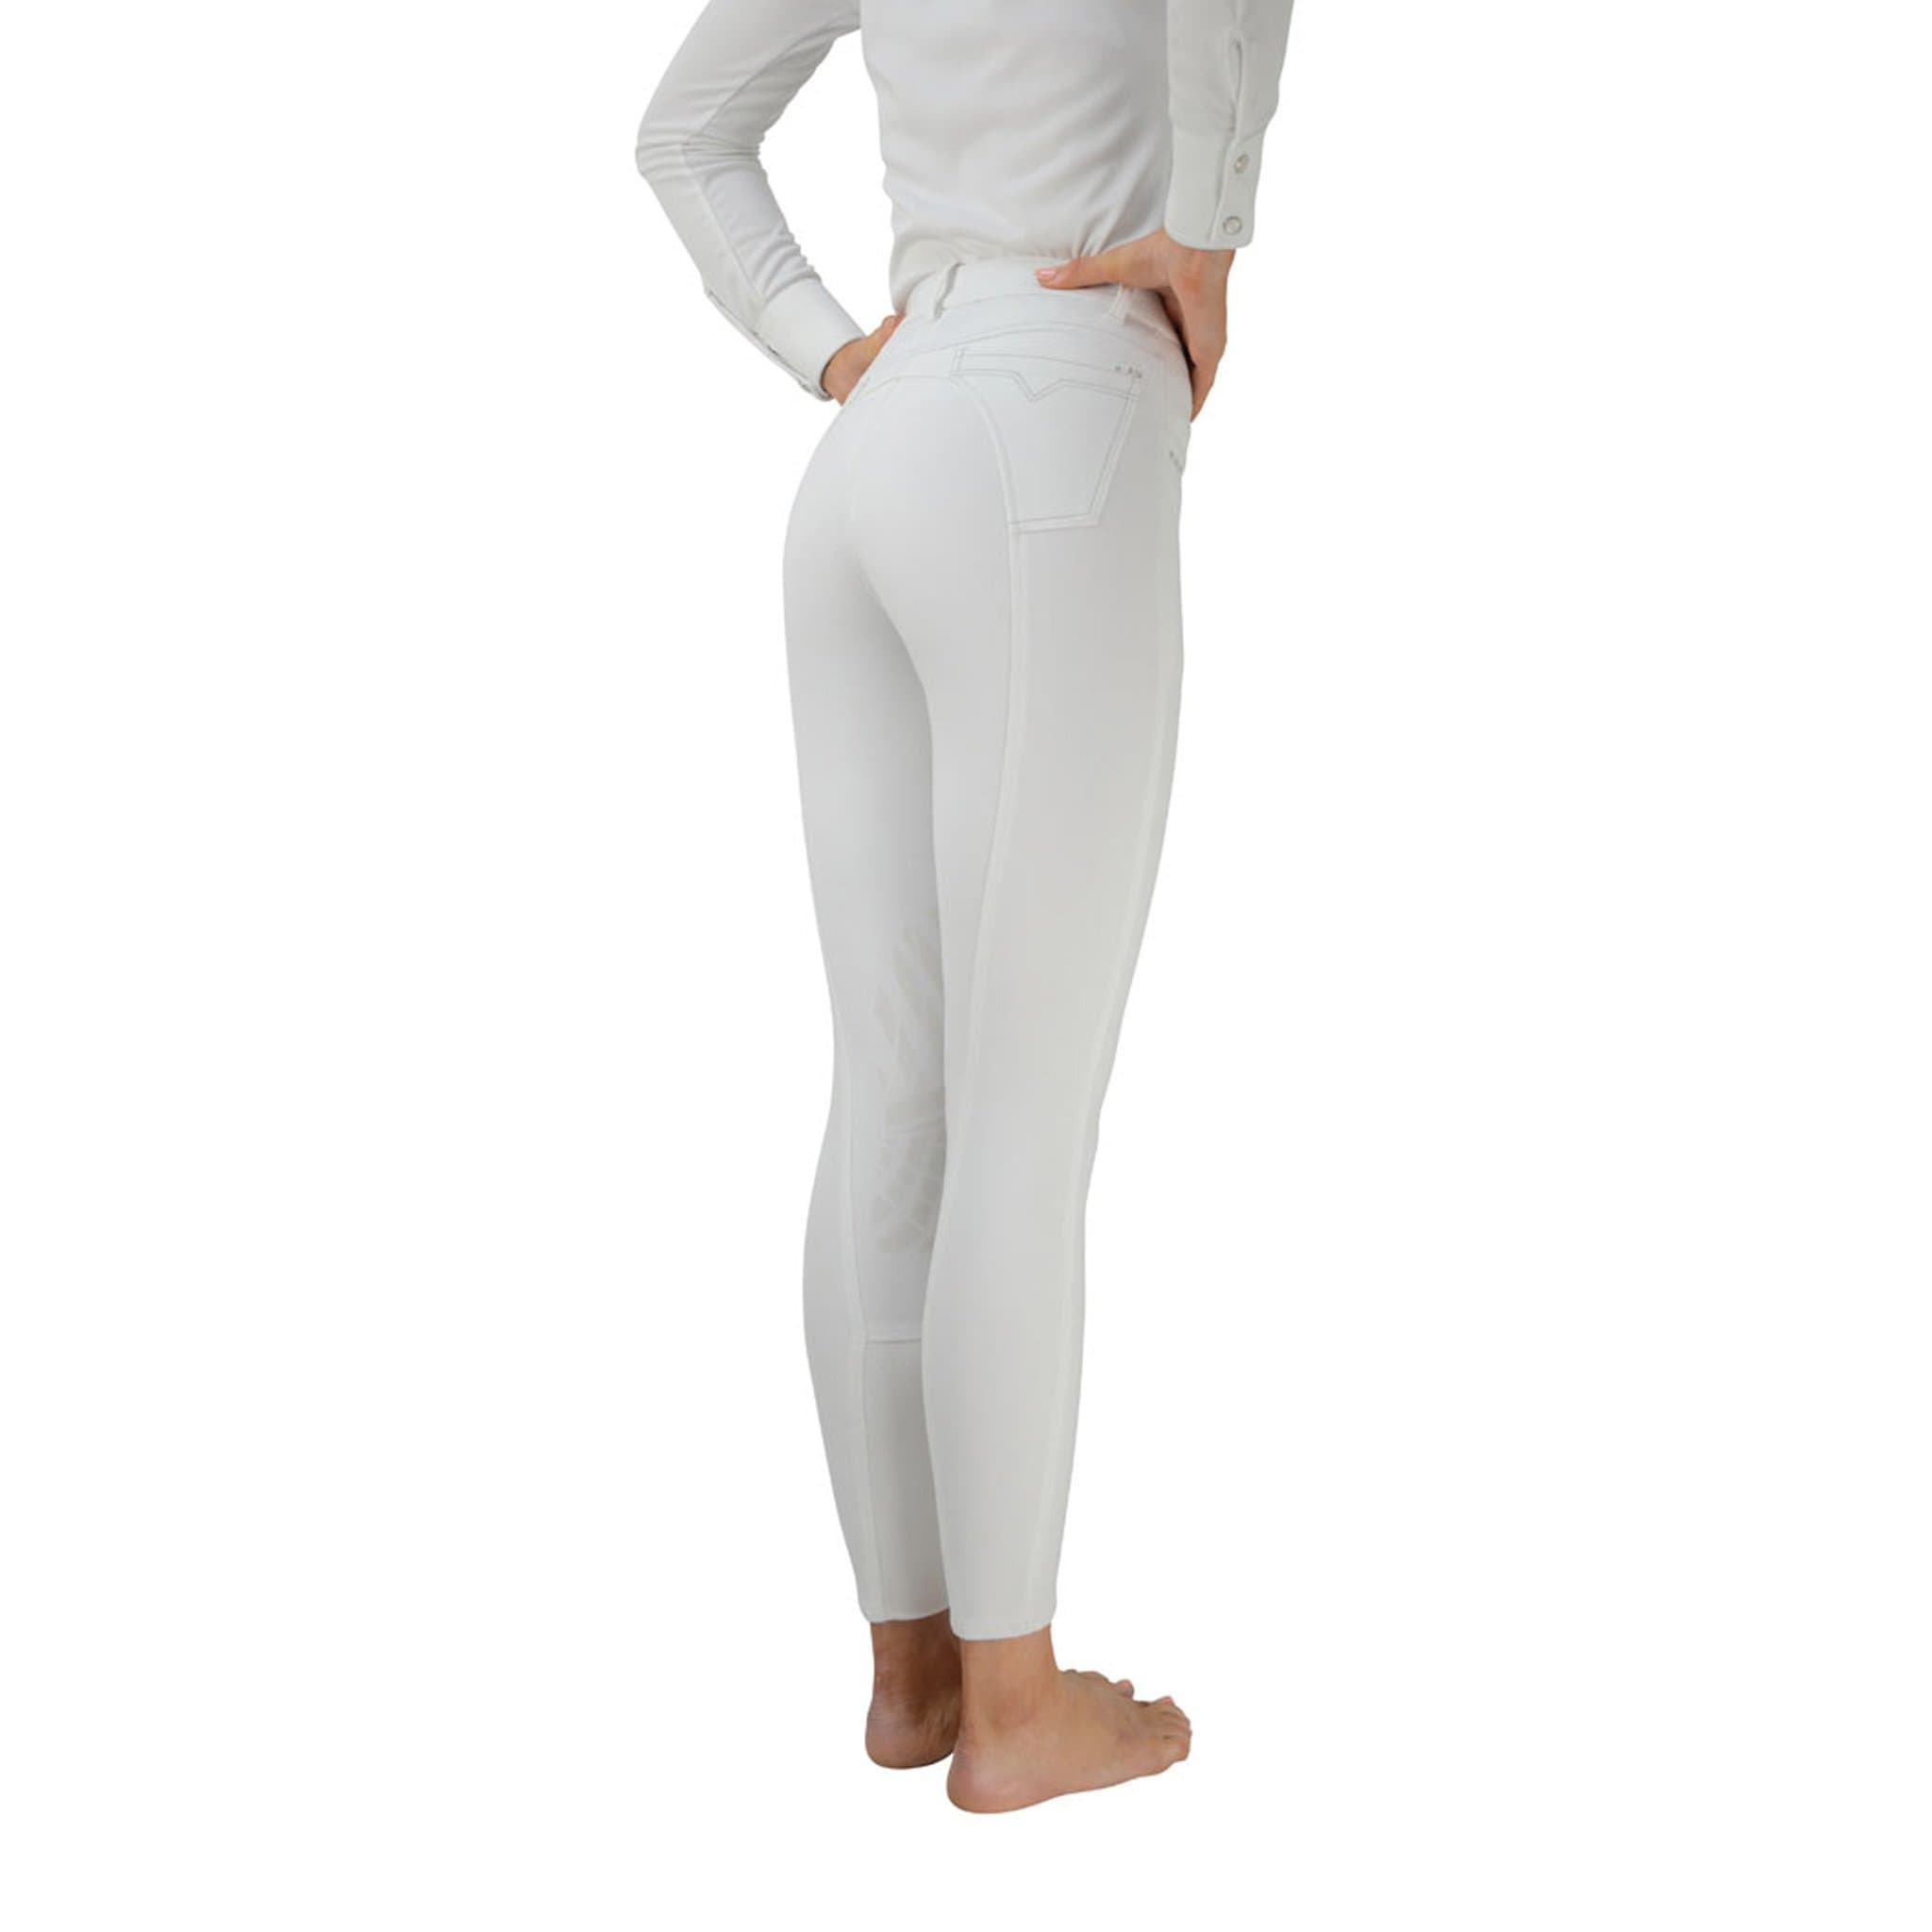 "HyPerformance Corby Cool Silicone Knee Breeches - 26"" (UK 10) - White"